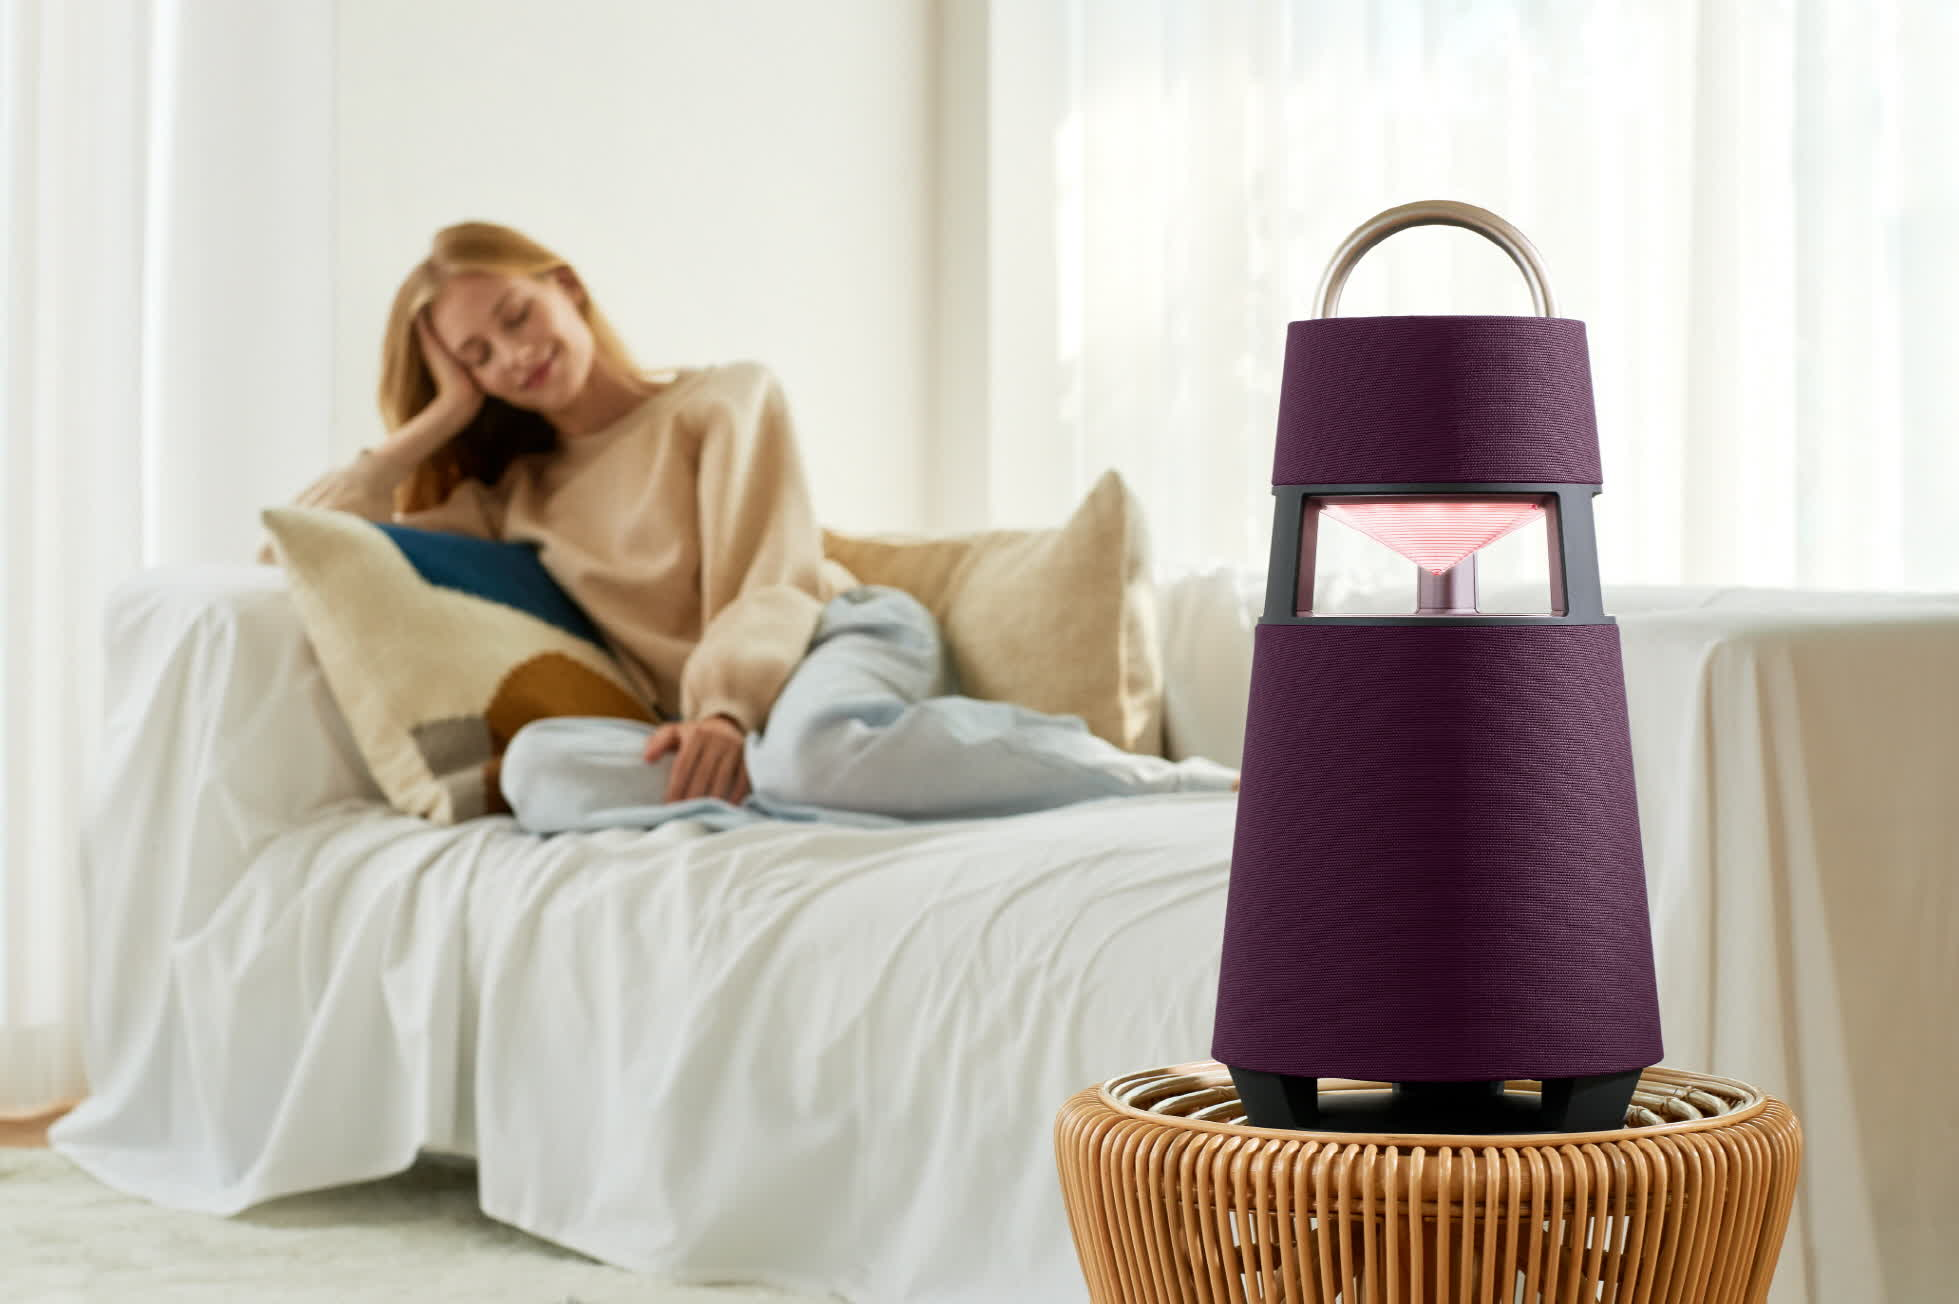 LG's new Xboom speaker offers 360 degrees of audio and mood lighting